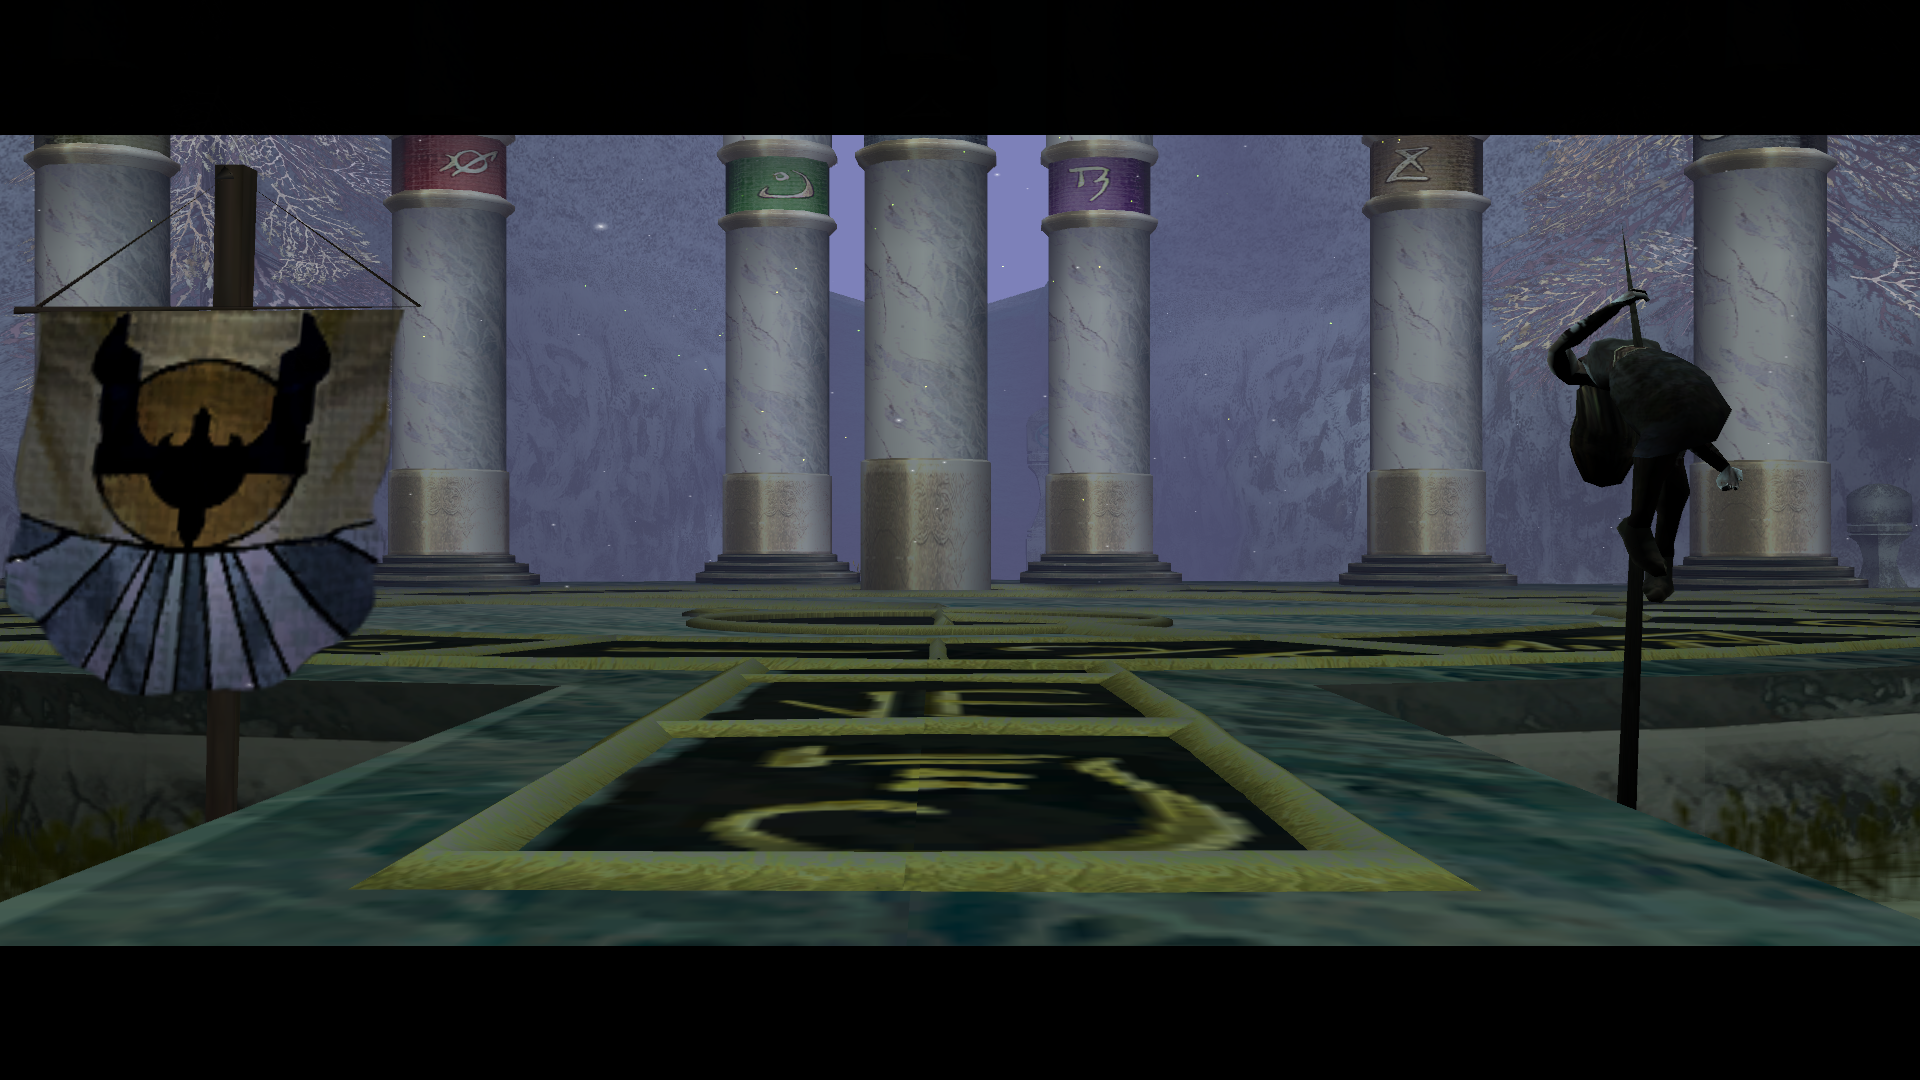 SR2--EraC-Cutscene-KillingFields-Alternate-Pillars-08.png